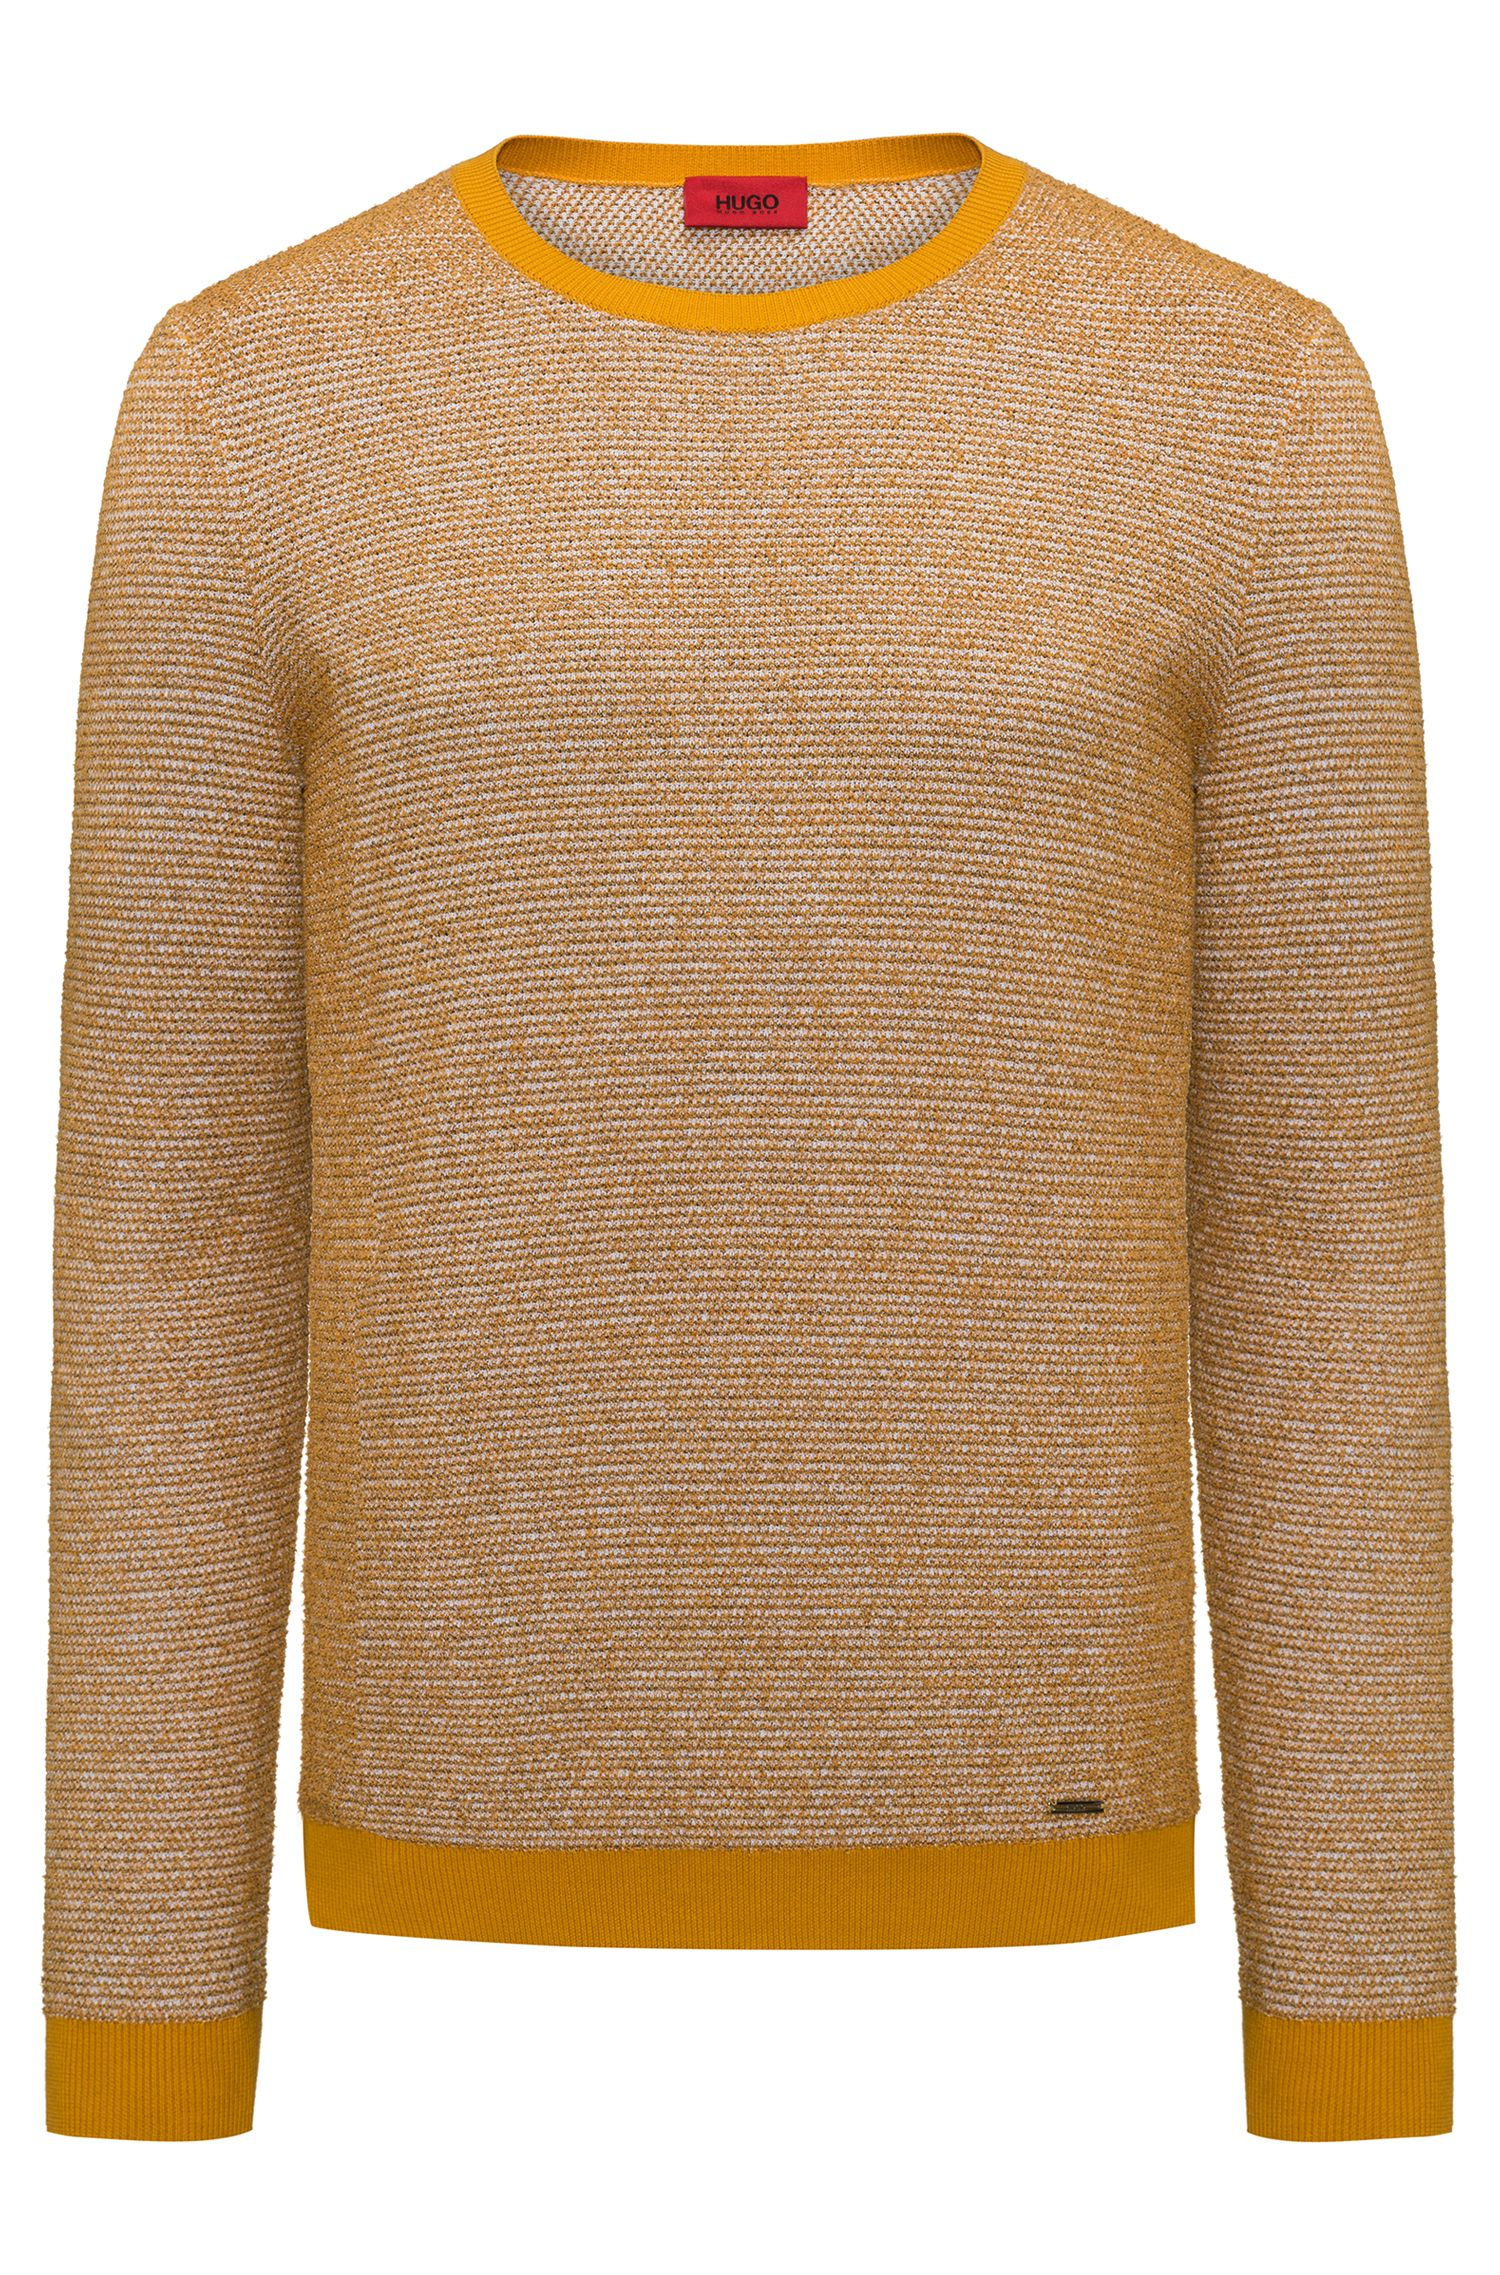 Crew-neck sweater in a structured cotton blend